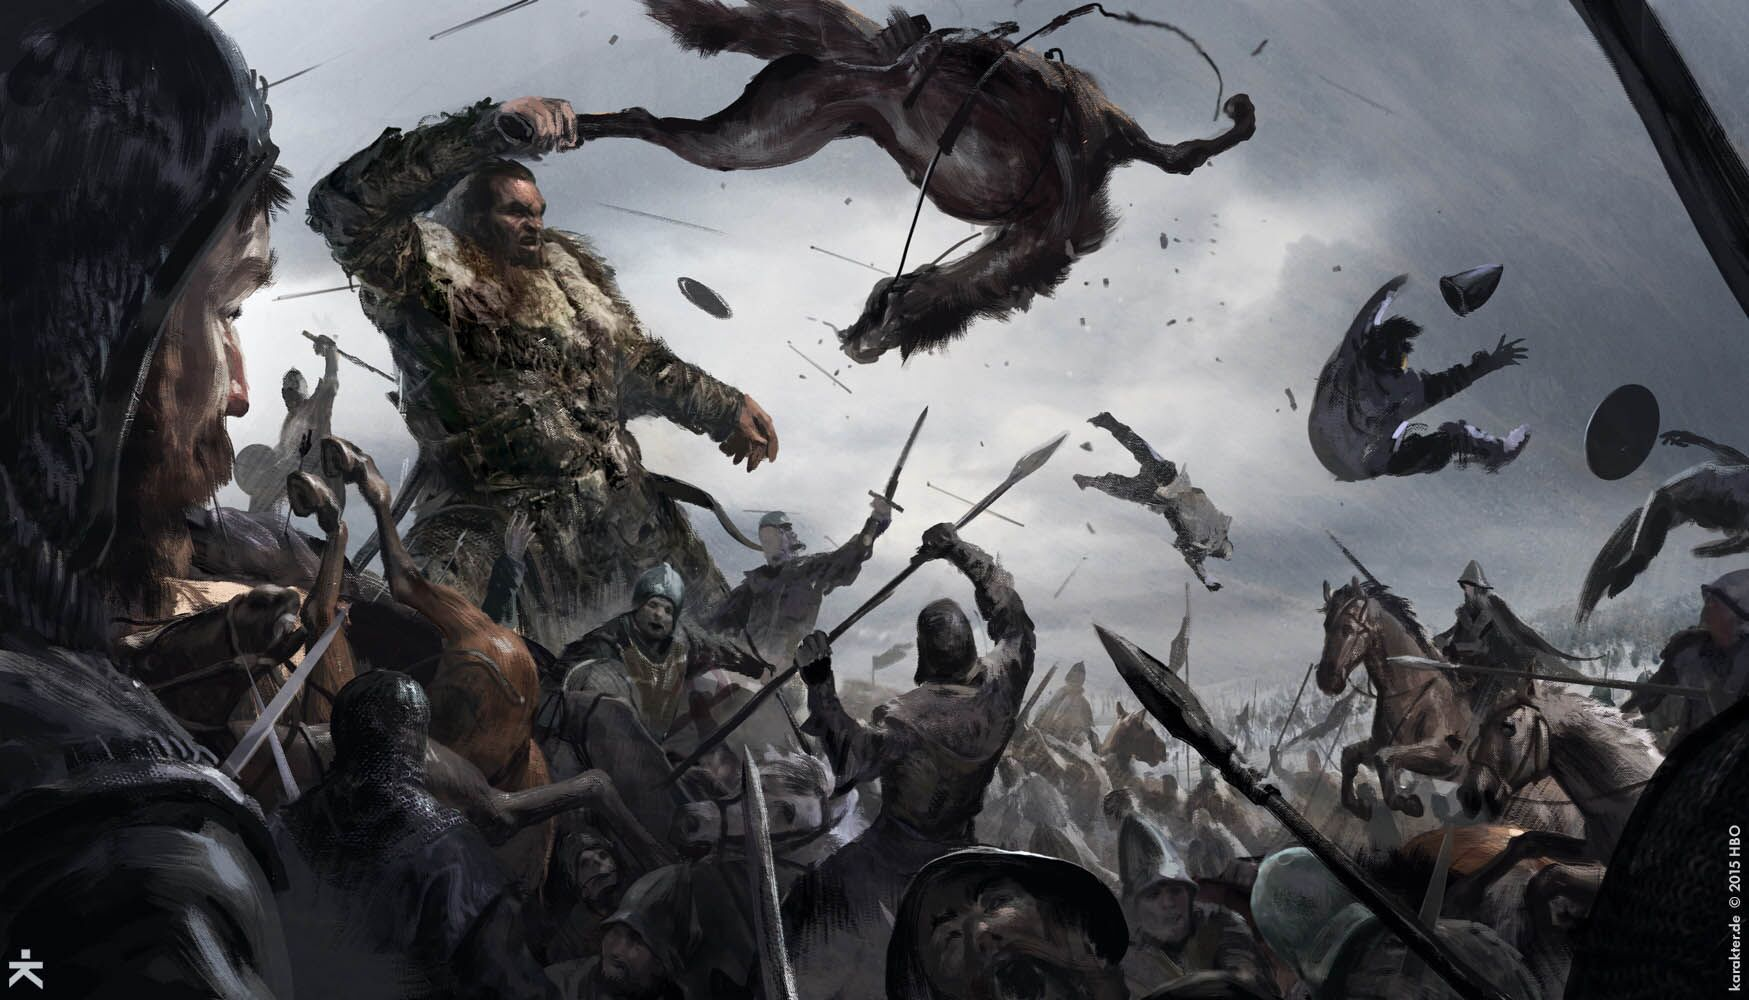 Check out the concept art behind Game of Thrones Season 6 Daario Naharis Game Of Thrones Season 4